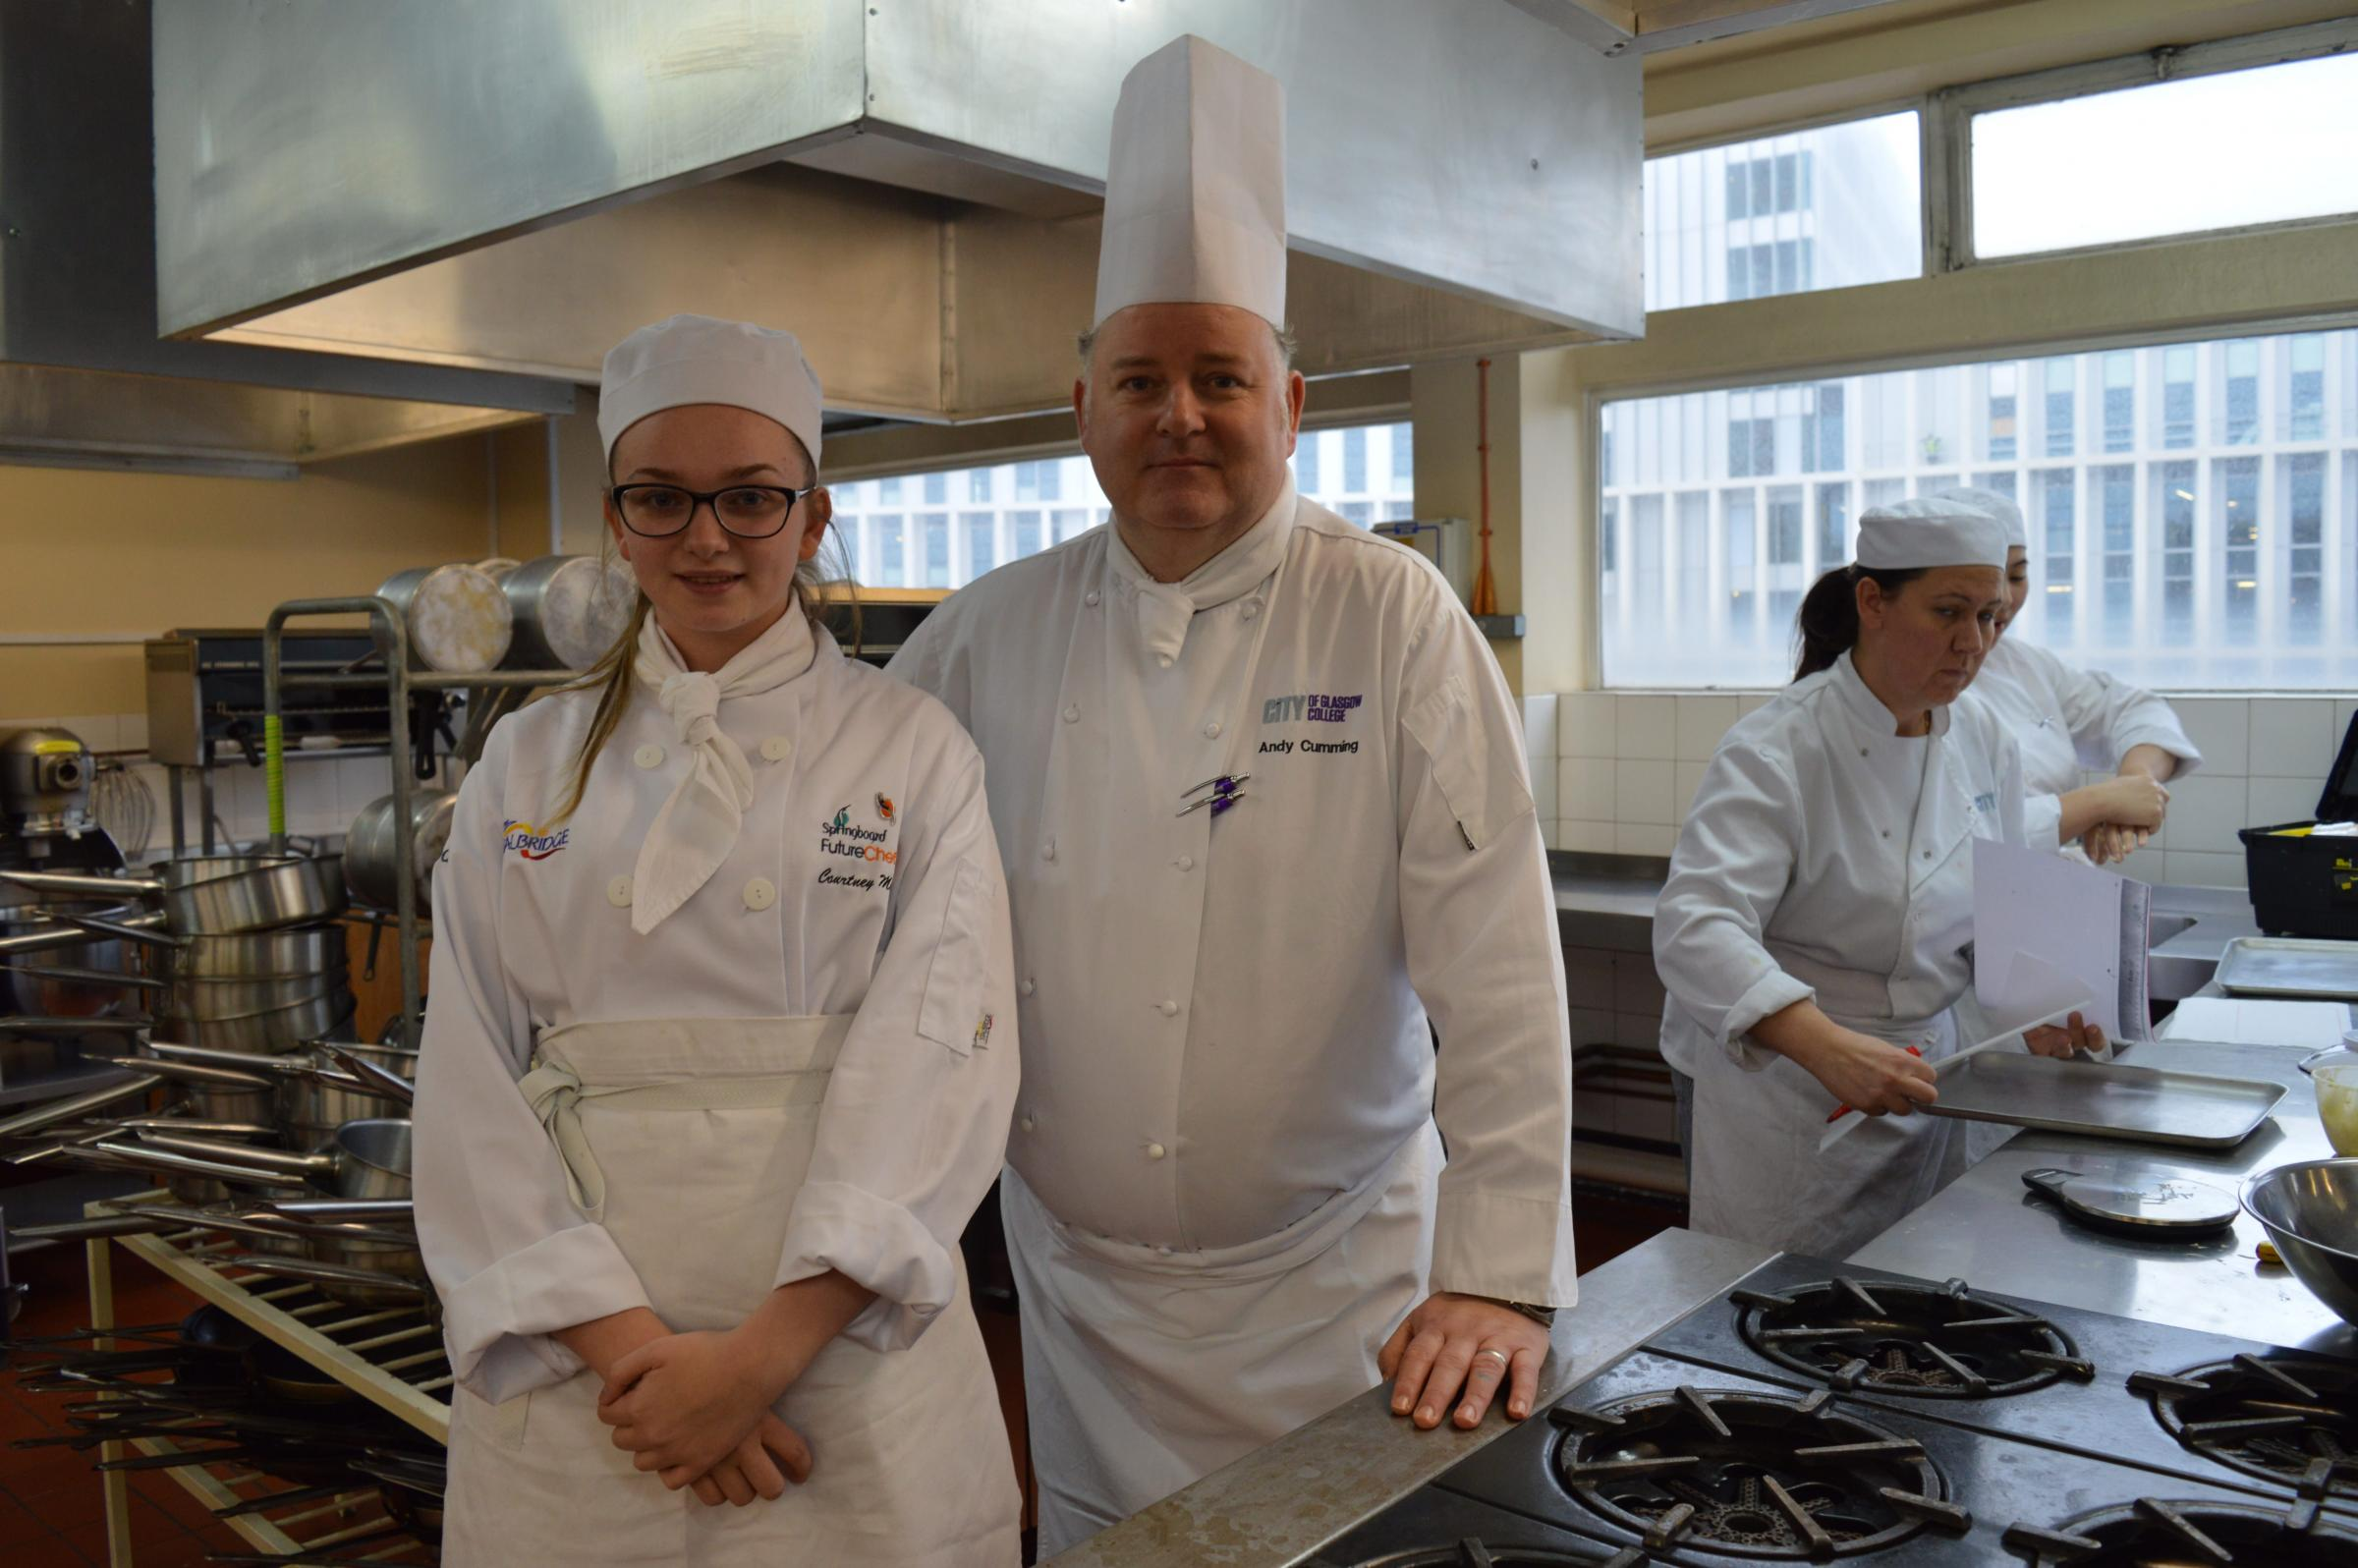 Glasgow Teenager to compete to be top chef